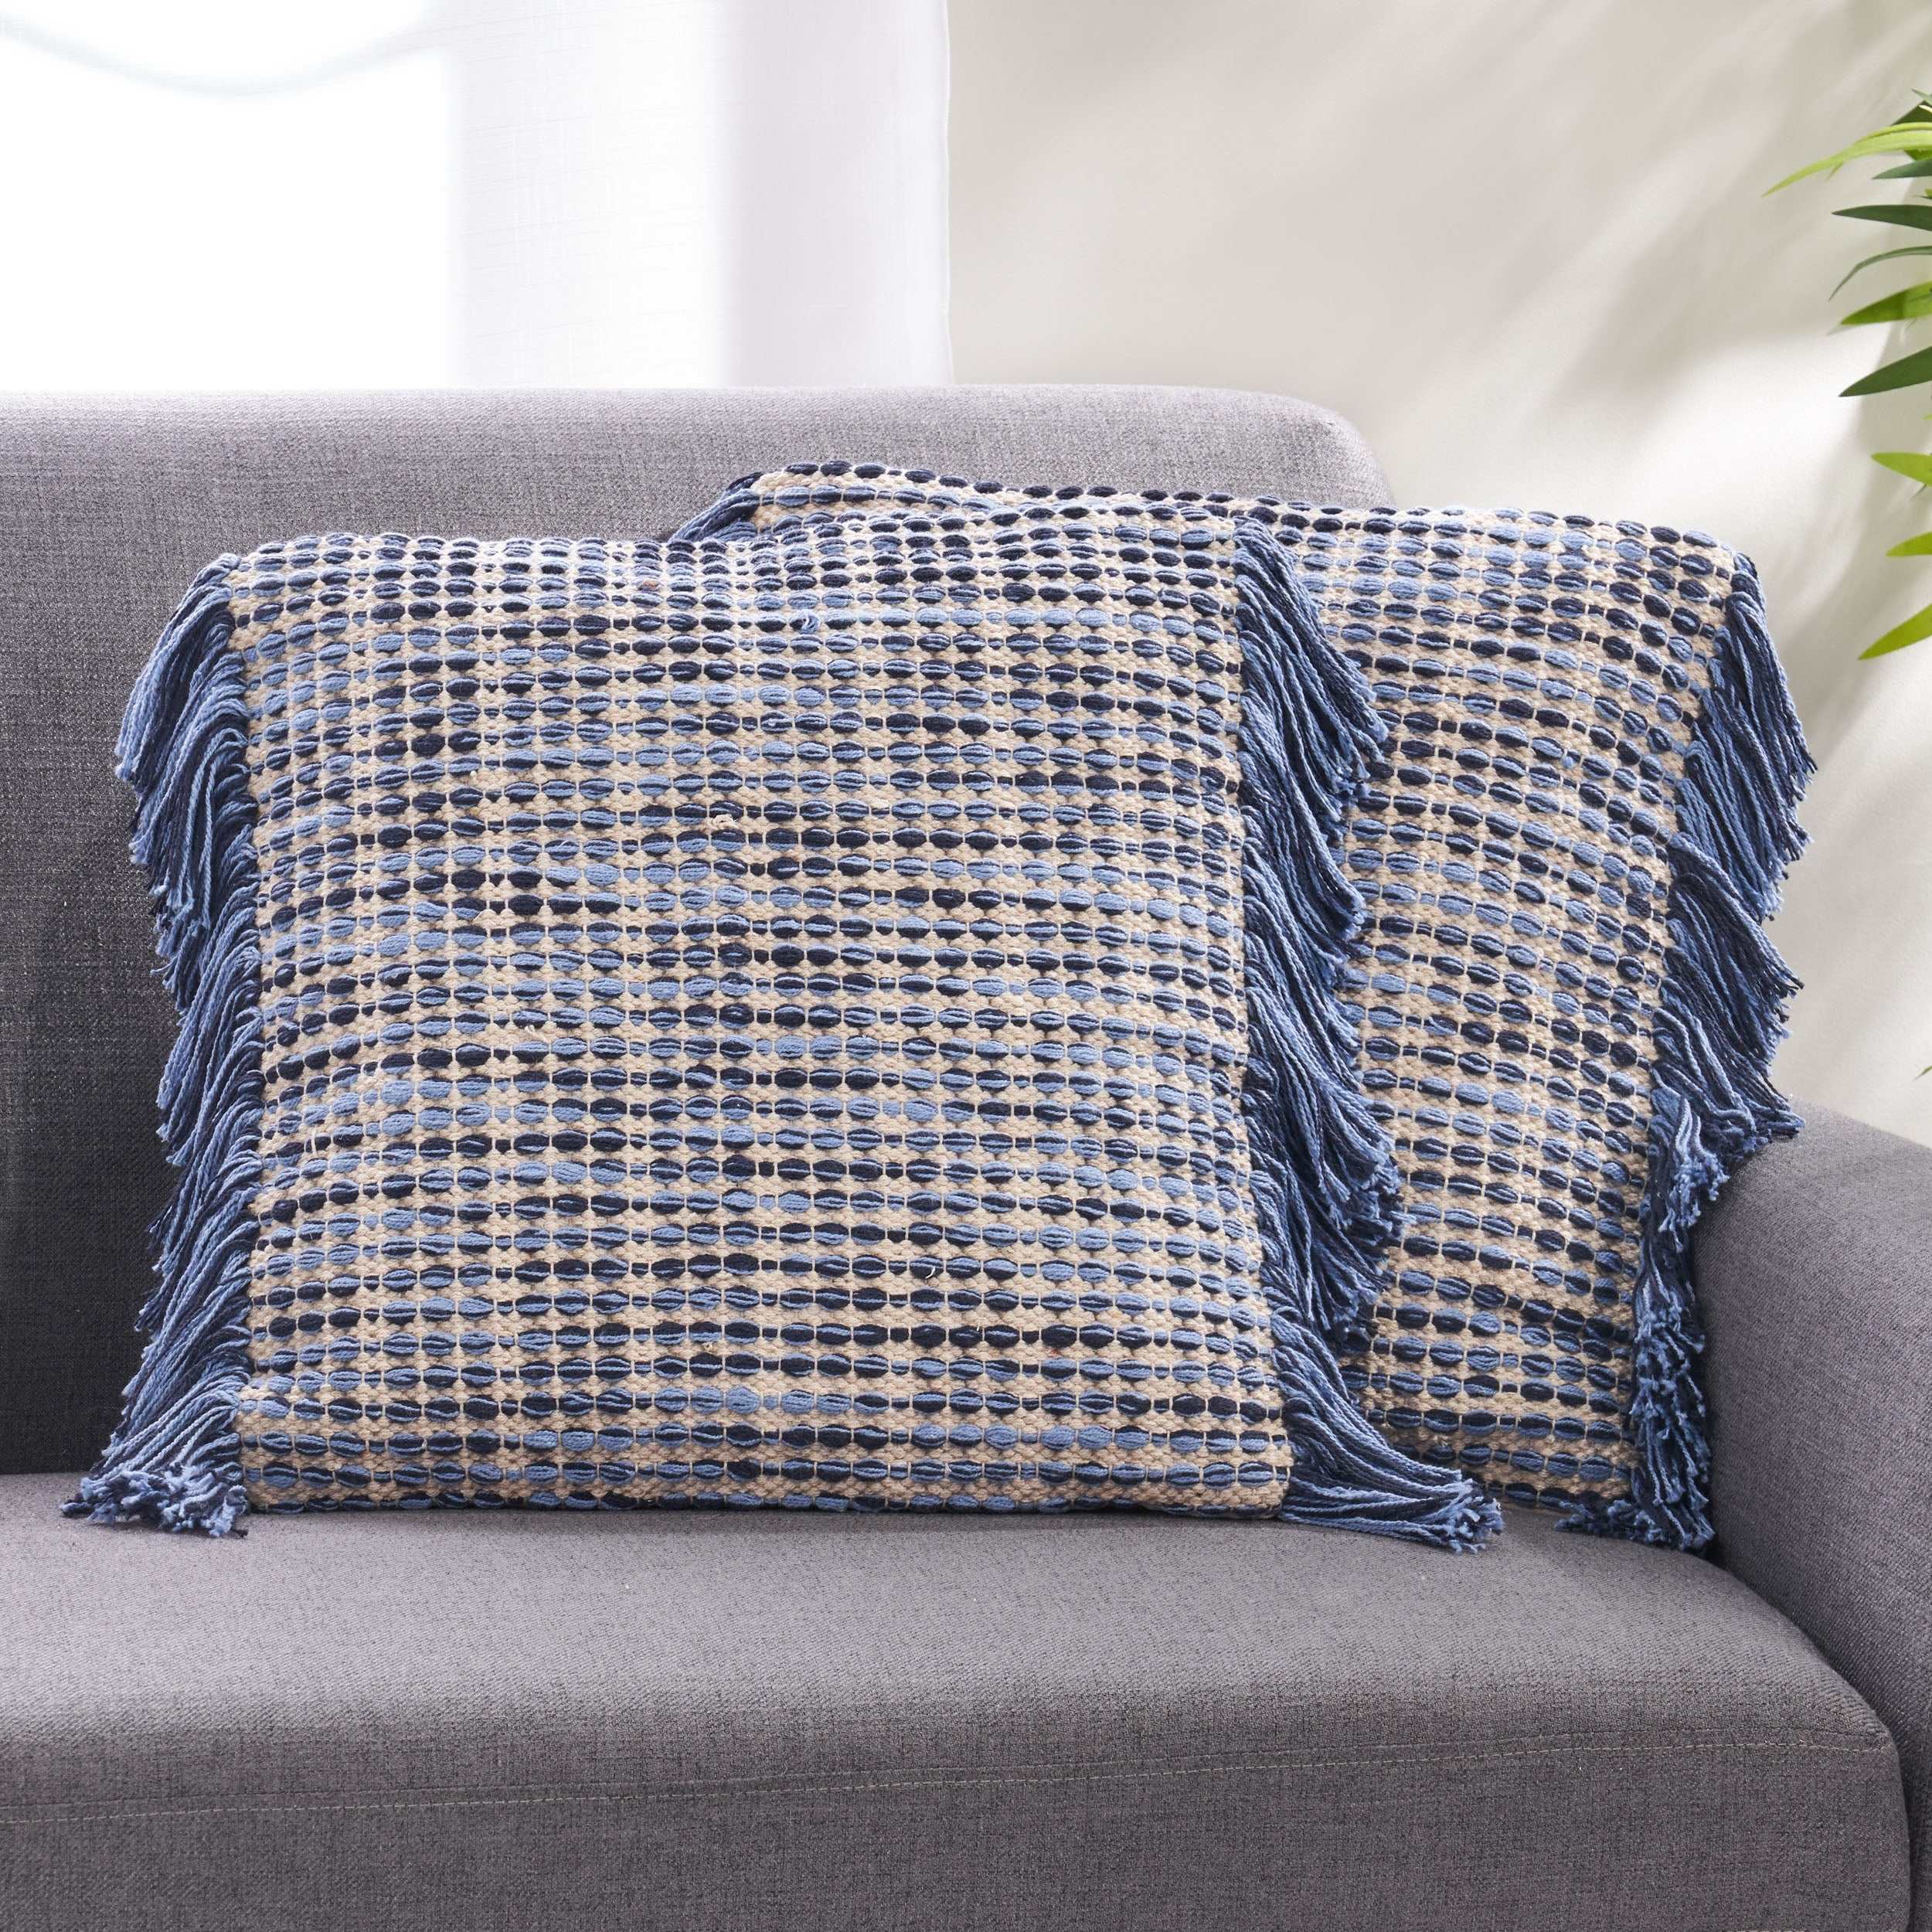 Picture of: Shop Black Friday Deals On Dunibar Hand Loomed Boho Pillow Cover By Christopher Knight Home Overstock 31111649 Blue Natural Single